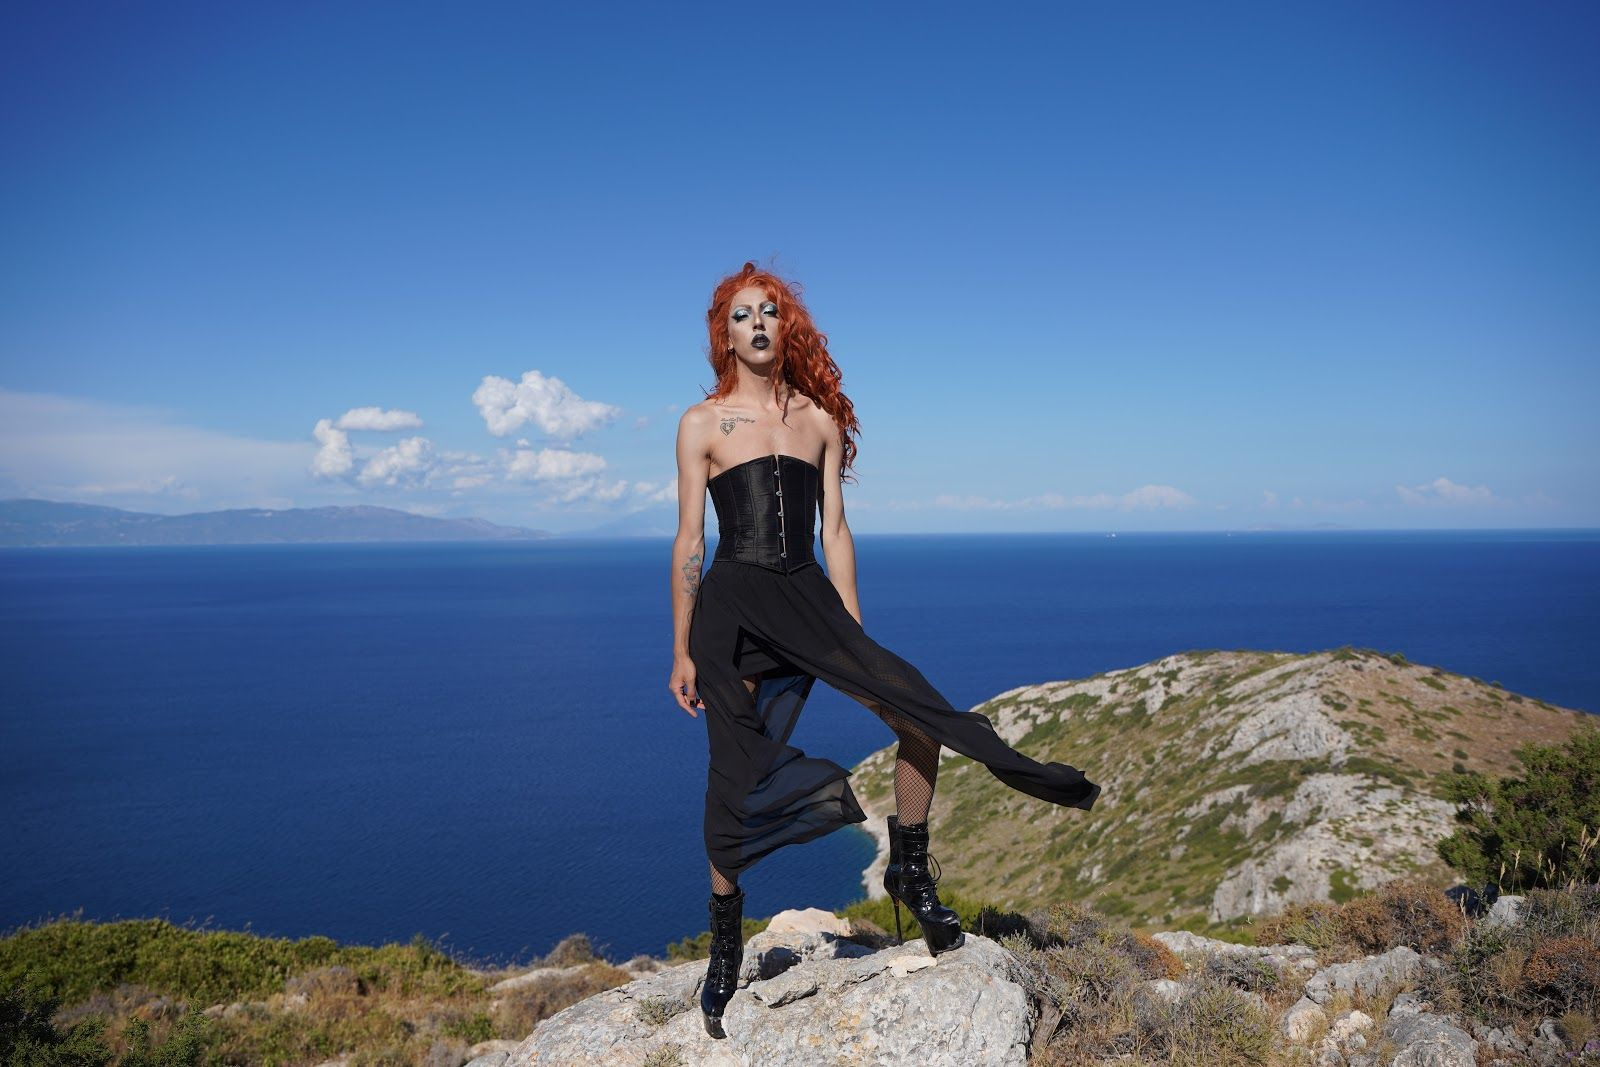 LGBTQIA+ History Month Highlight: Q&A with Sofoklis Vlachou on Being a Drag Performer in Greece